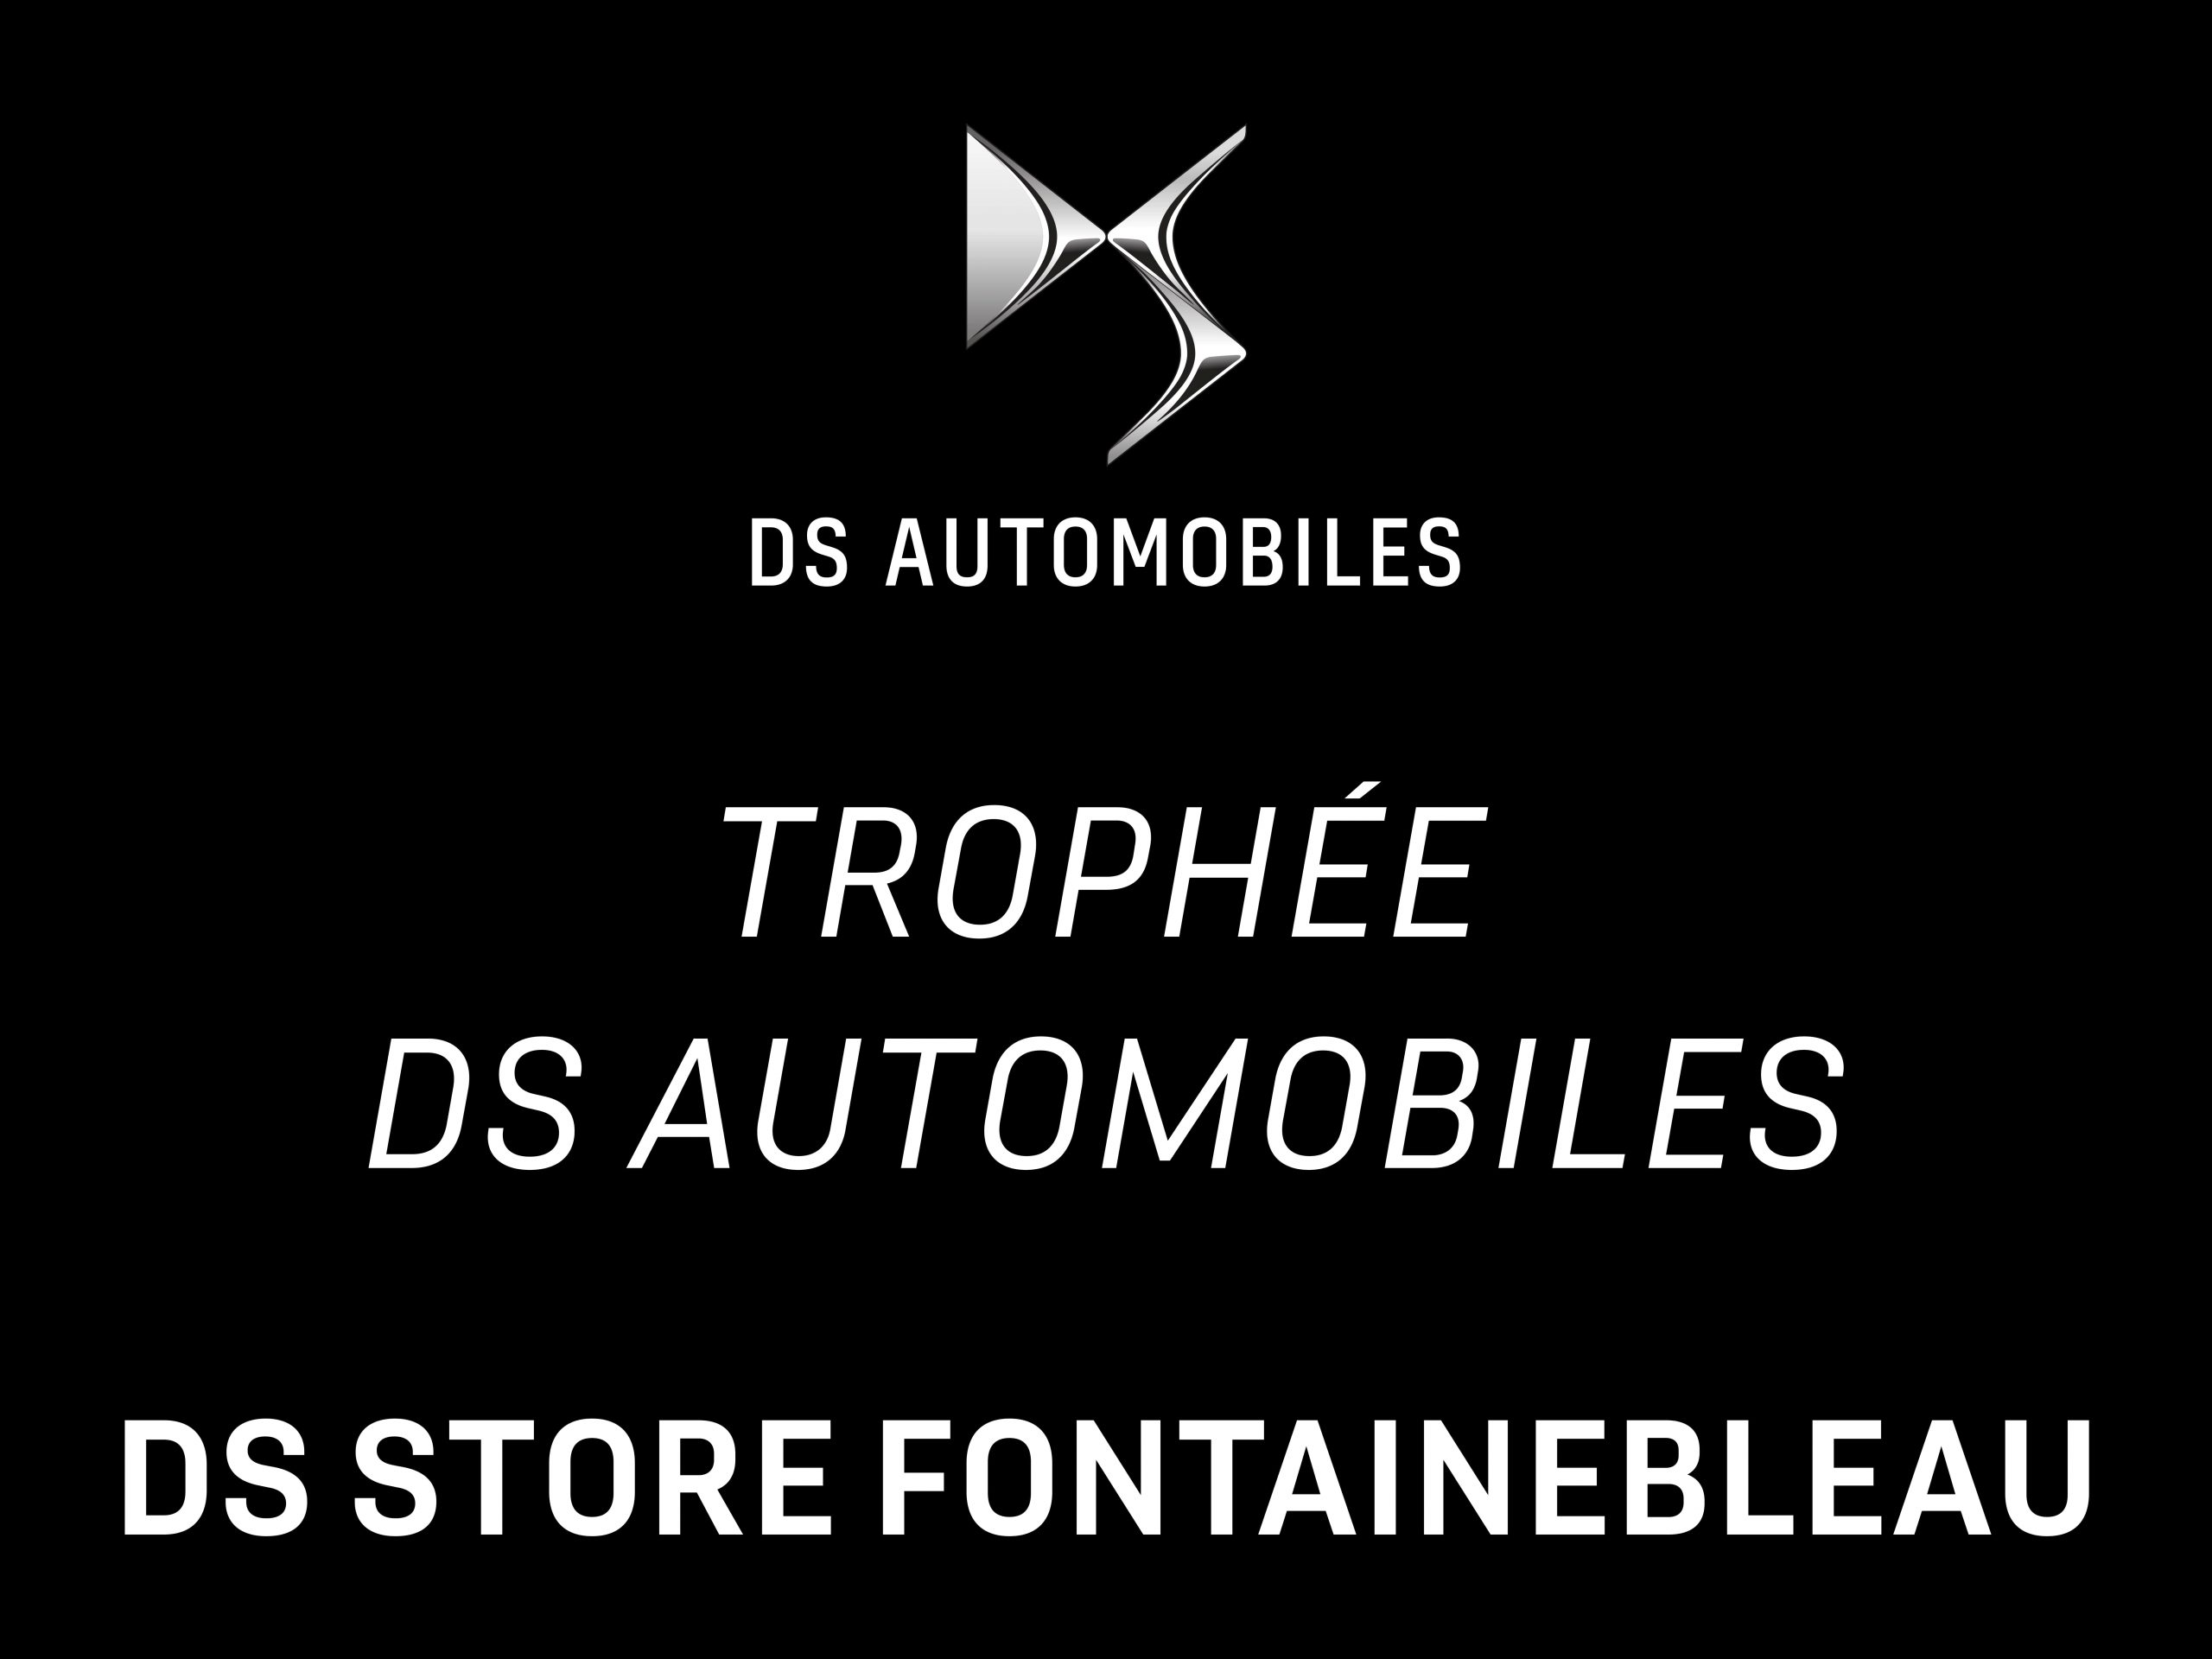 DS STORE FONTAINEBLEAU